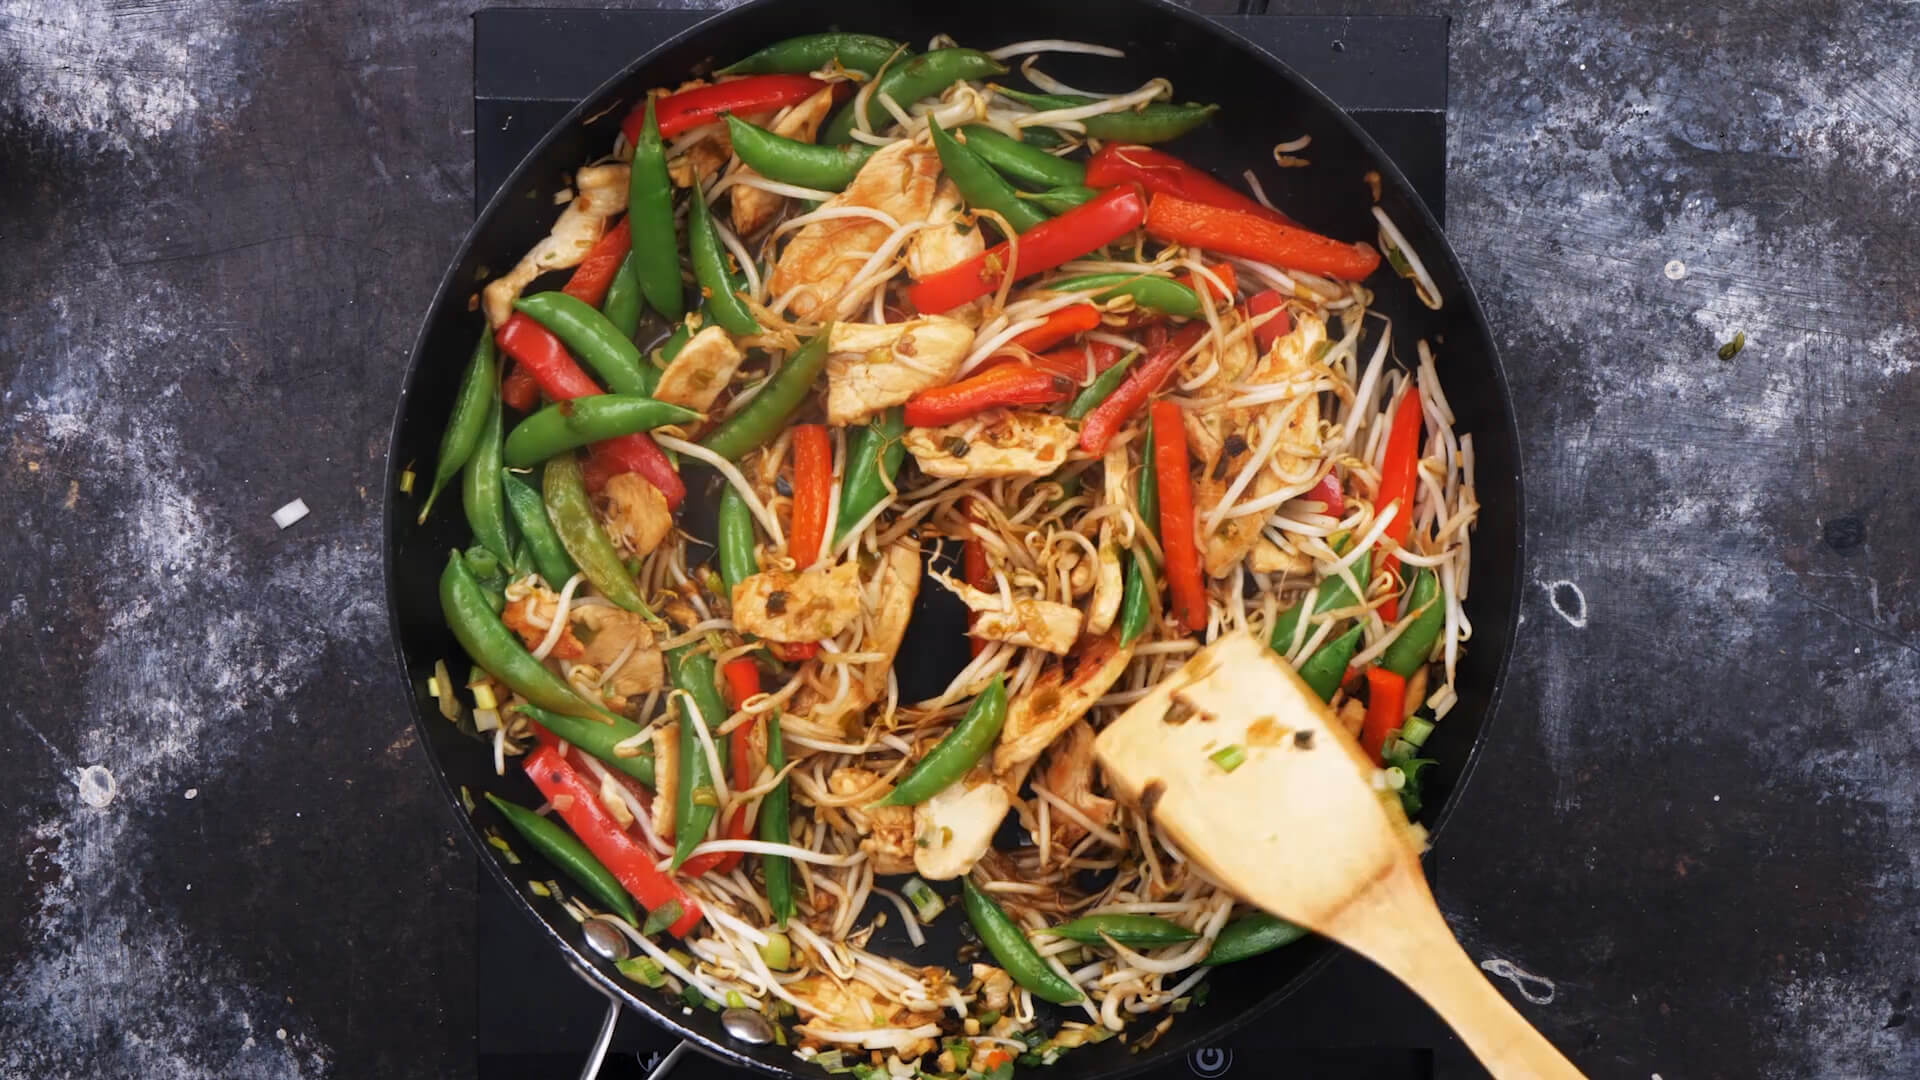 Spicy Stir Fry